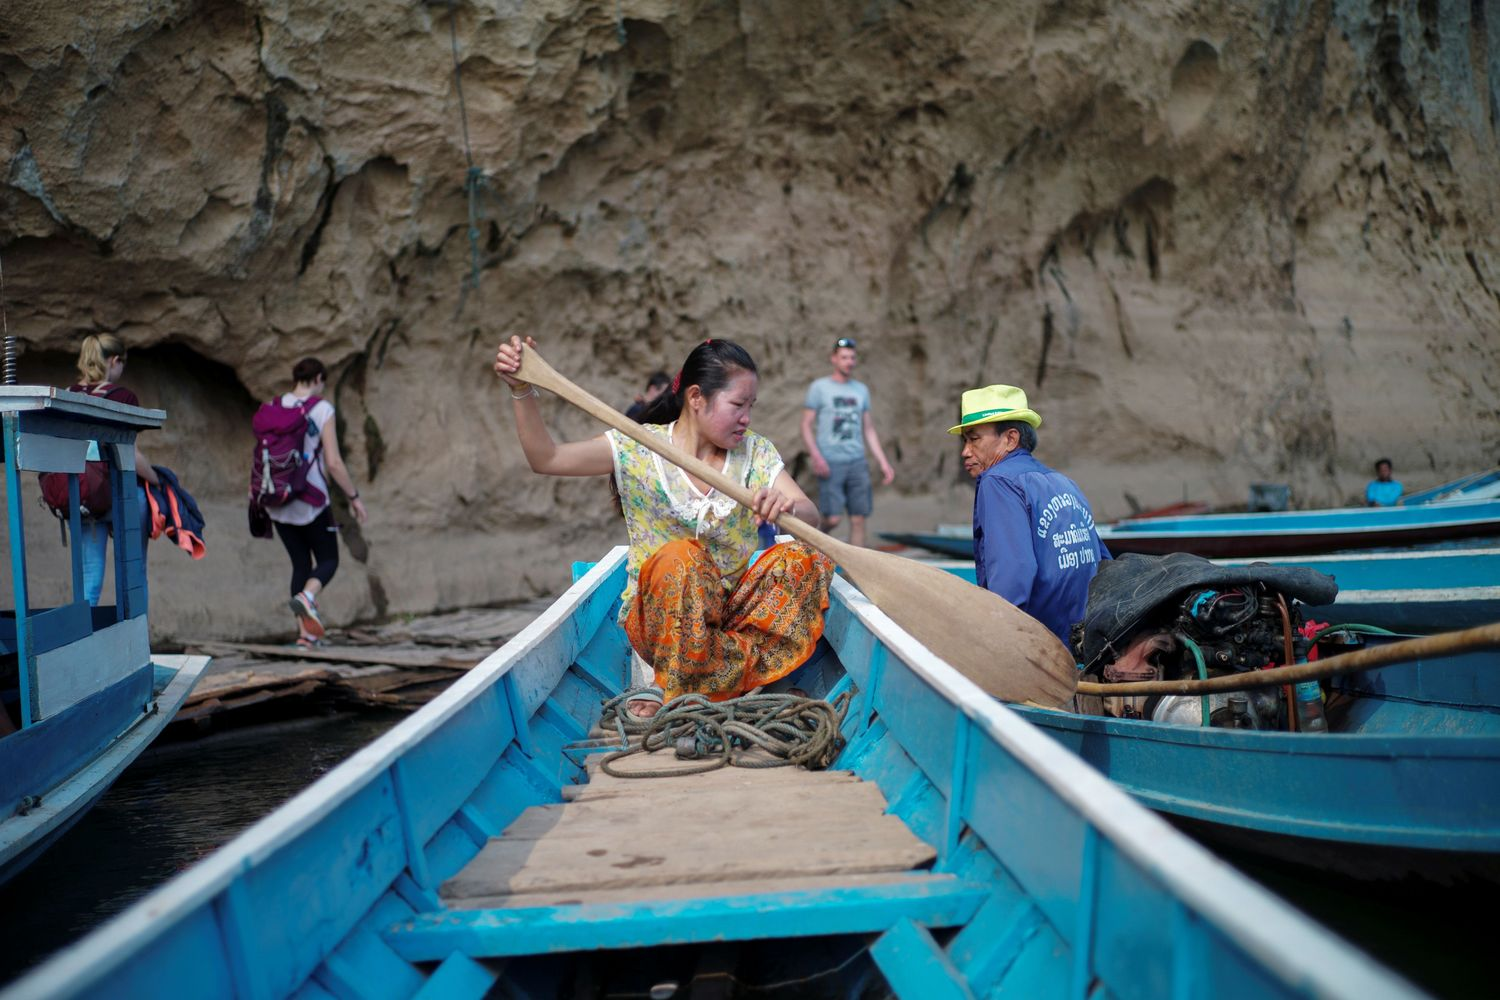 A local villager drive a boat where the future site of the Luang Prabang dam will be on the Mekong River outskirt of Luang Prabang province on Sunday. (Reuters photo)